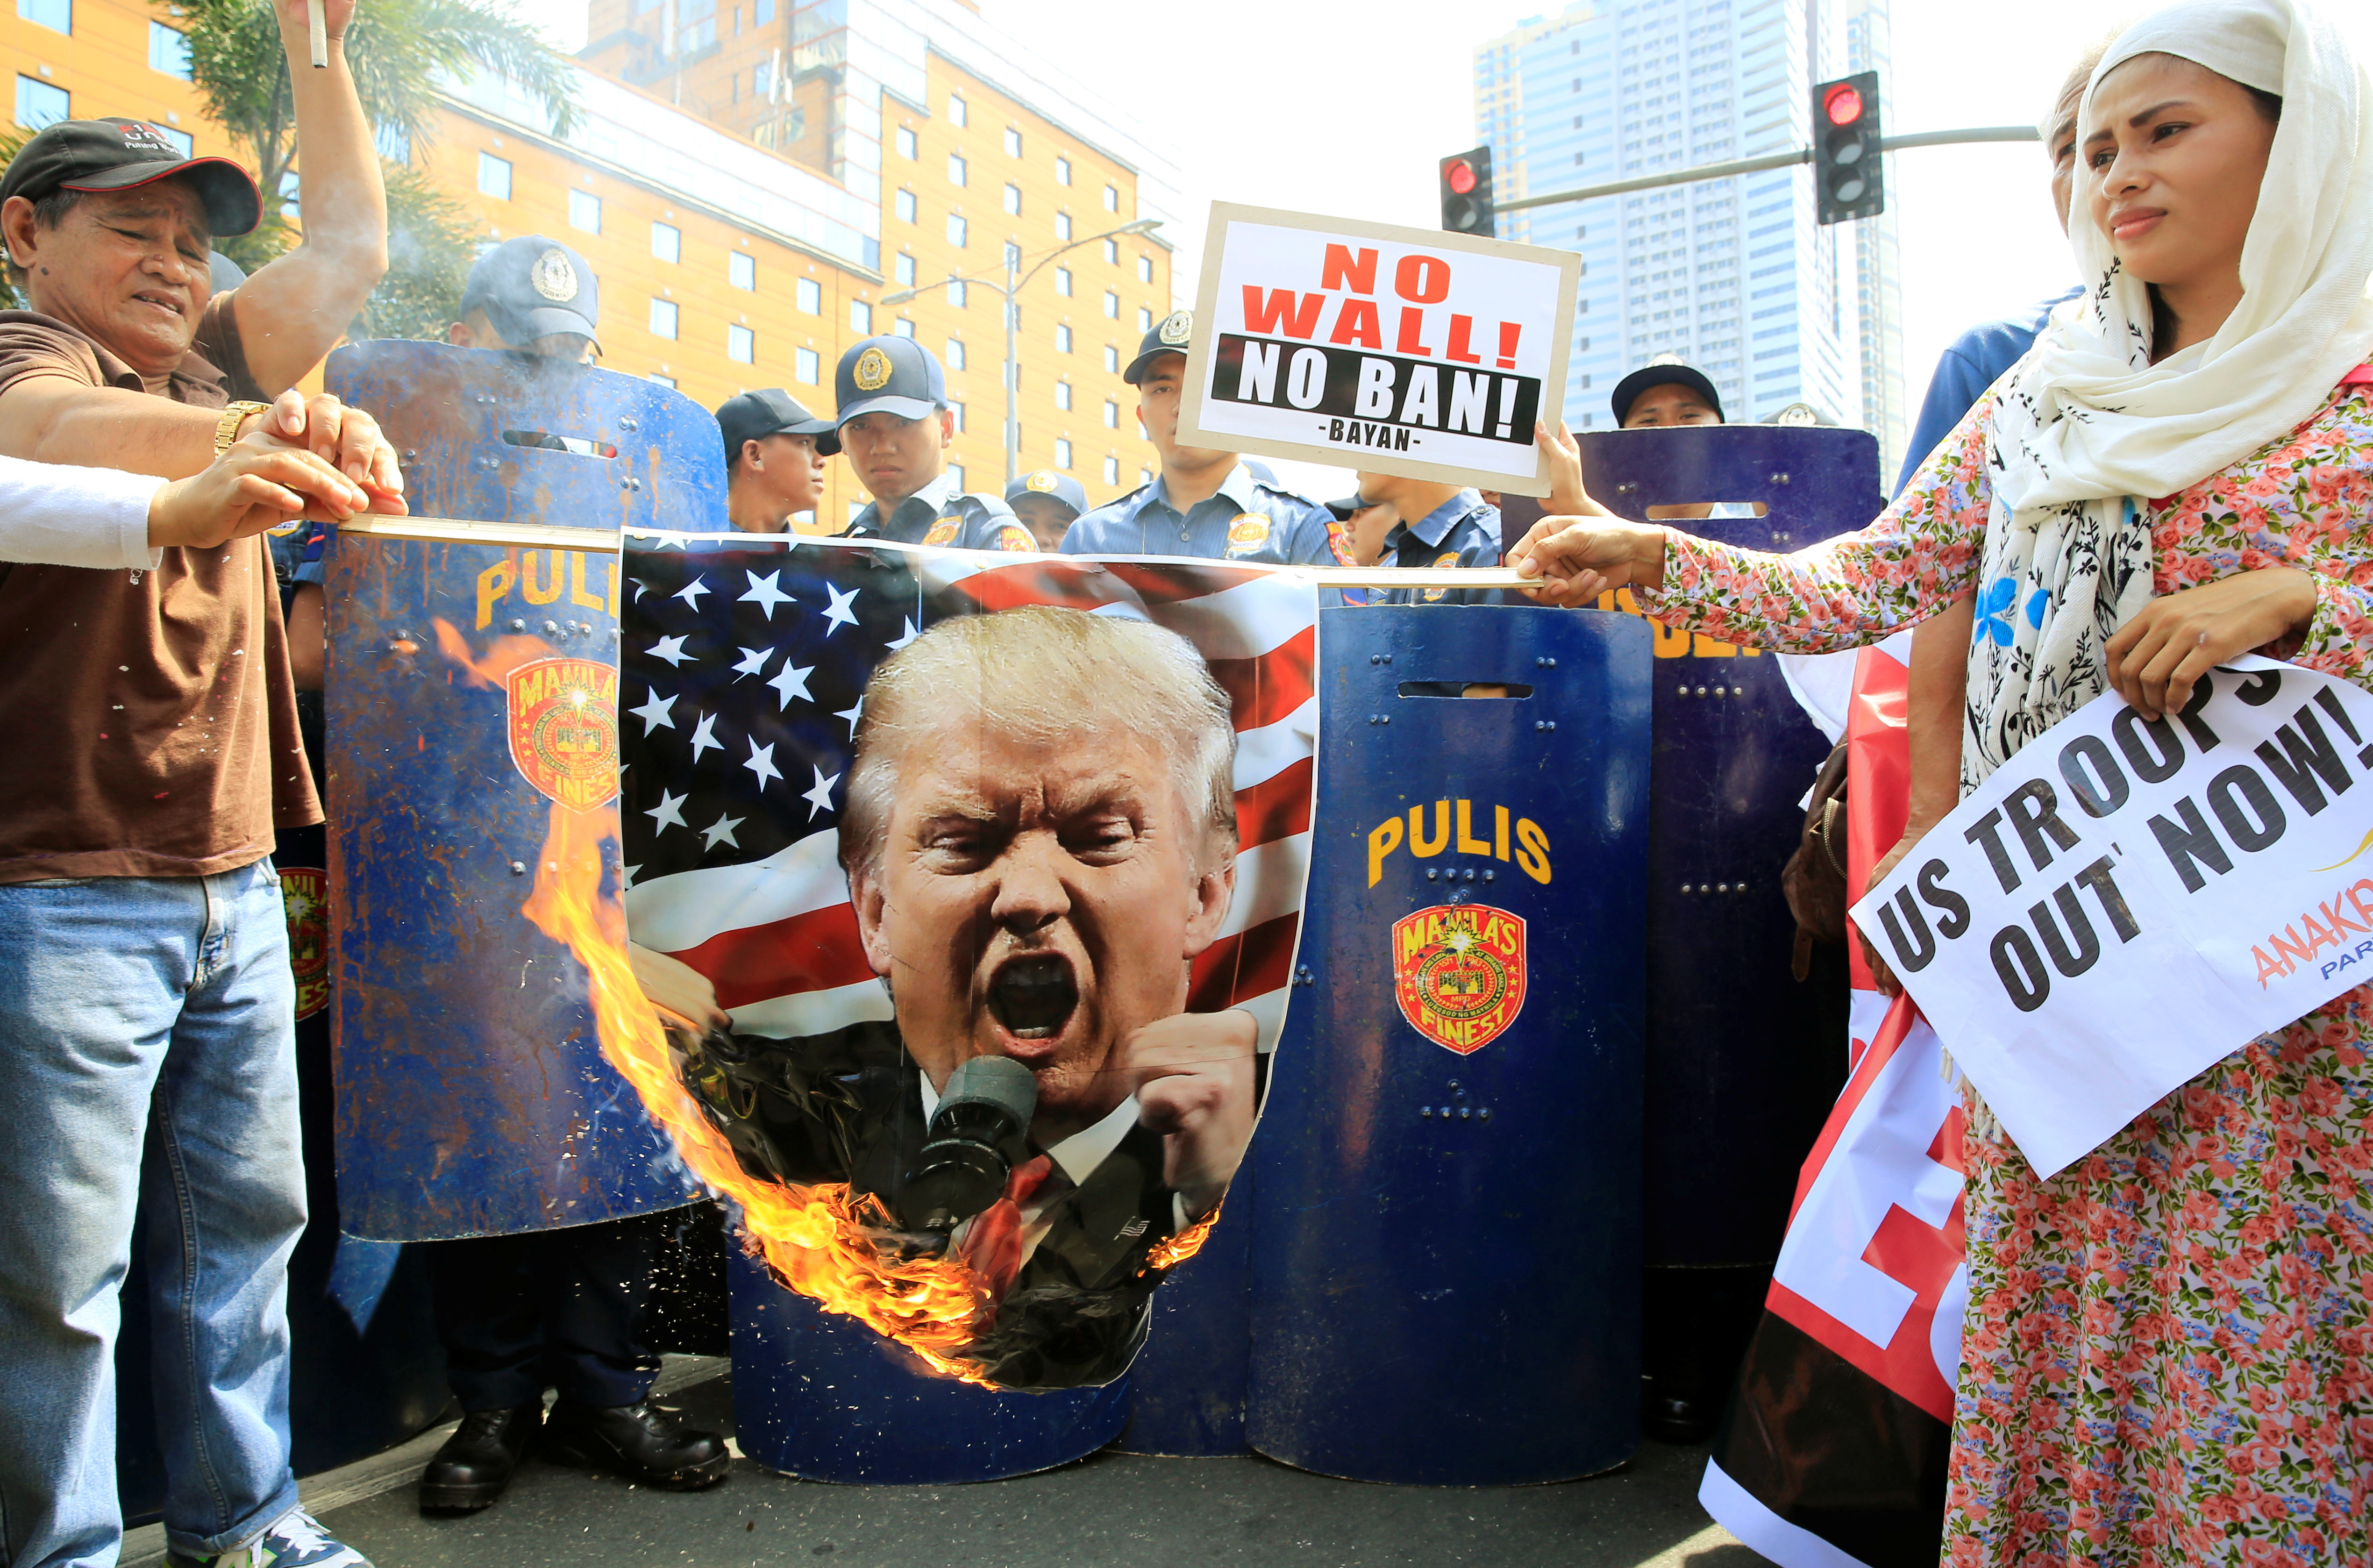 Filipino activists burn a portrait of U.S. President Donald Trump during a protest against U.S. immigration policies outside the U.S. embassy in metro Manila, Philippines February 4, 2017. REUTERS/Romeo Ranoco - RTX2ZKKL